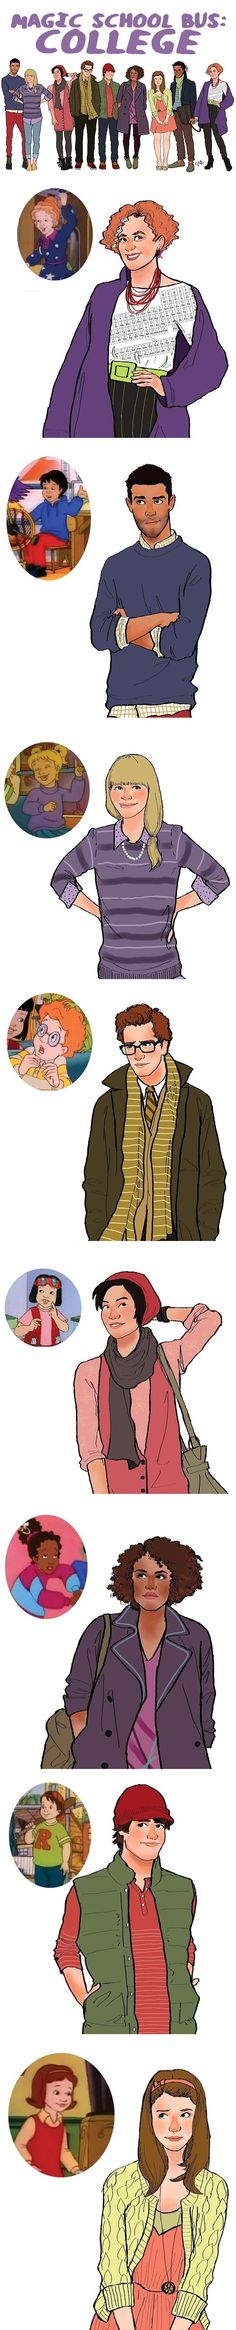 College aged Magic School Bus characters…I really LOVED watching The Magic School Bus